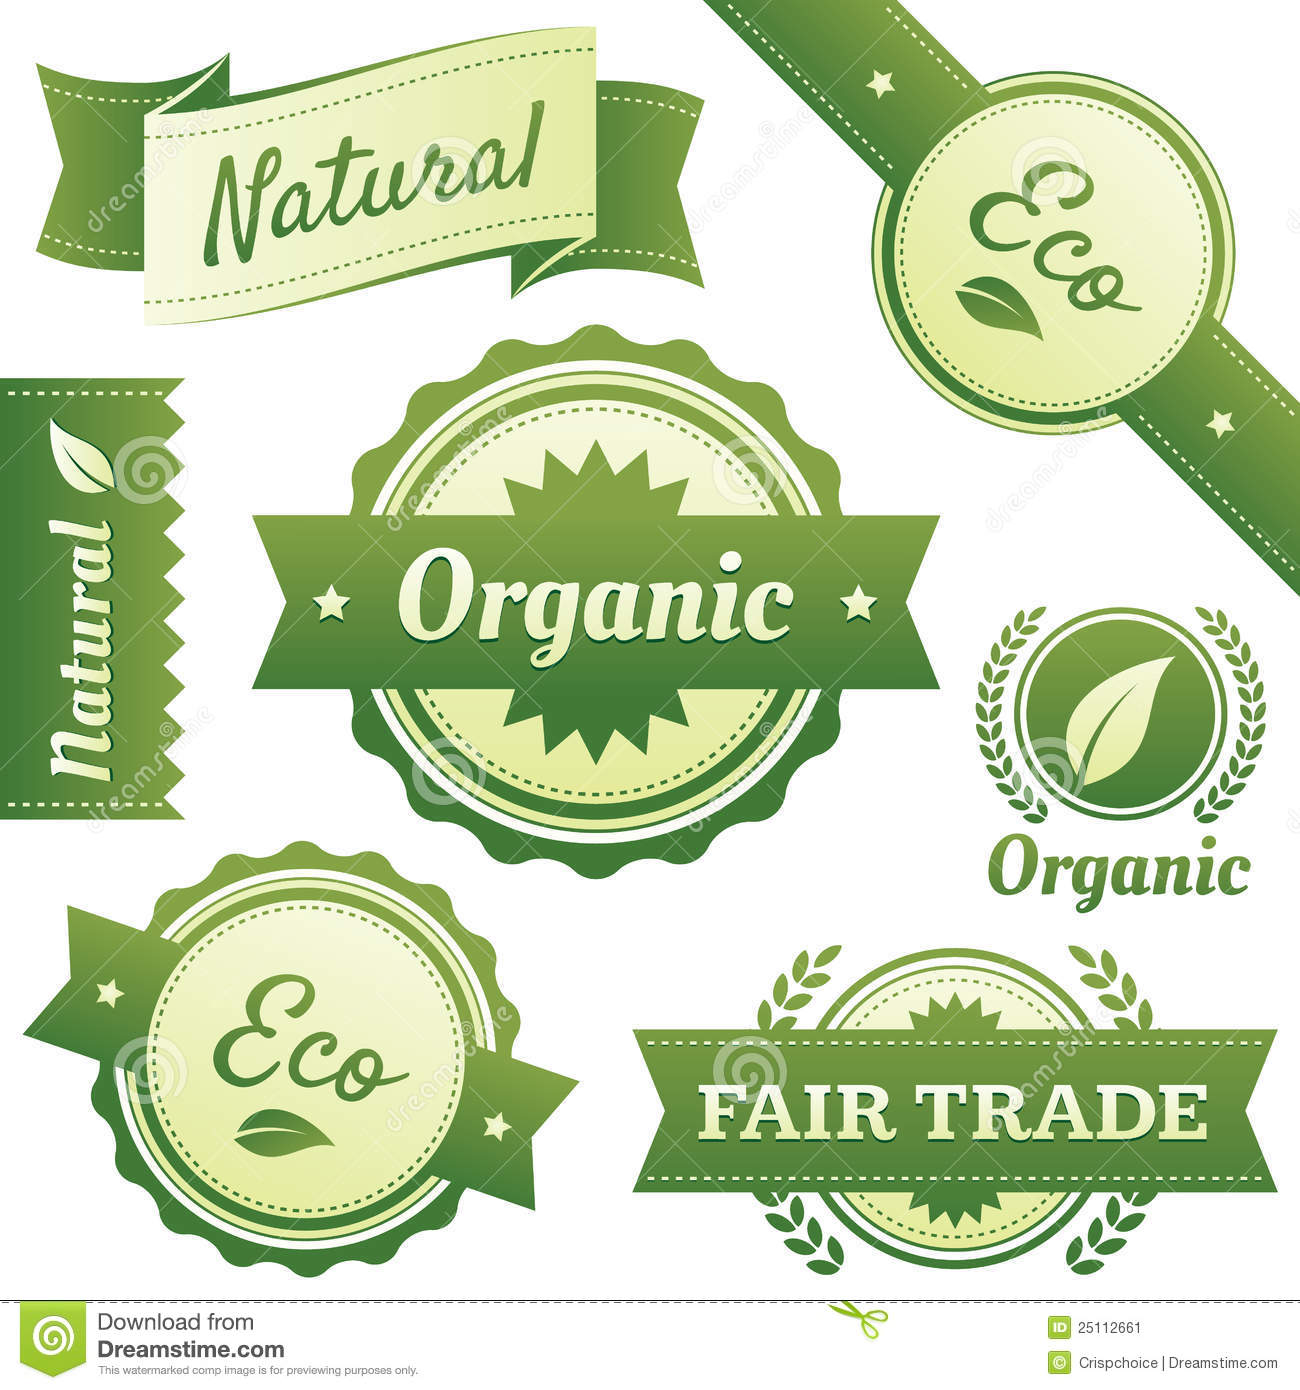 Organic&Natural |TradeSecrets.ca | Buy Beauty in Canada - Shop ...